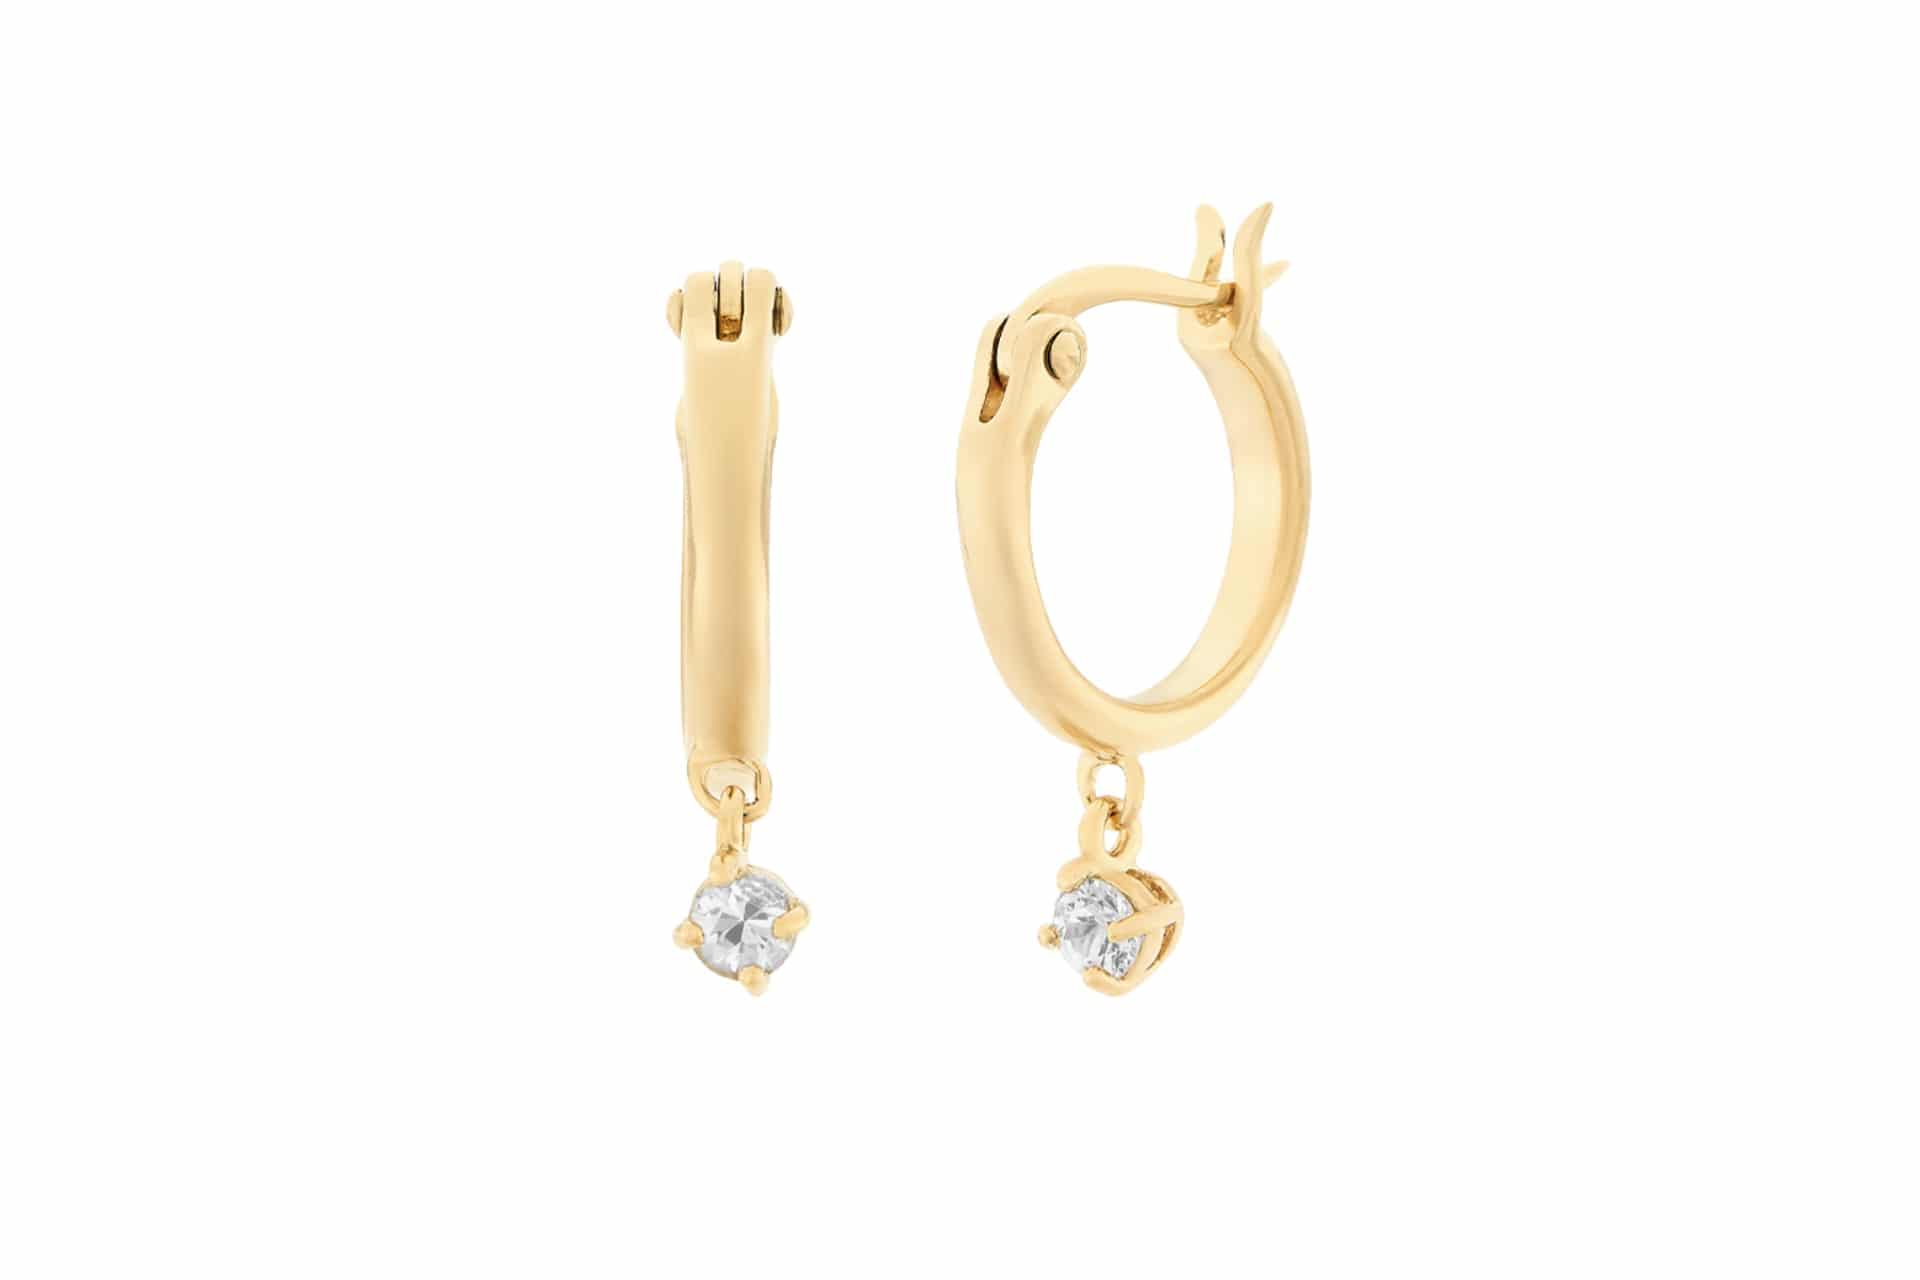 gold hoop earrings with little sapphire sparkles hanging from them